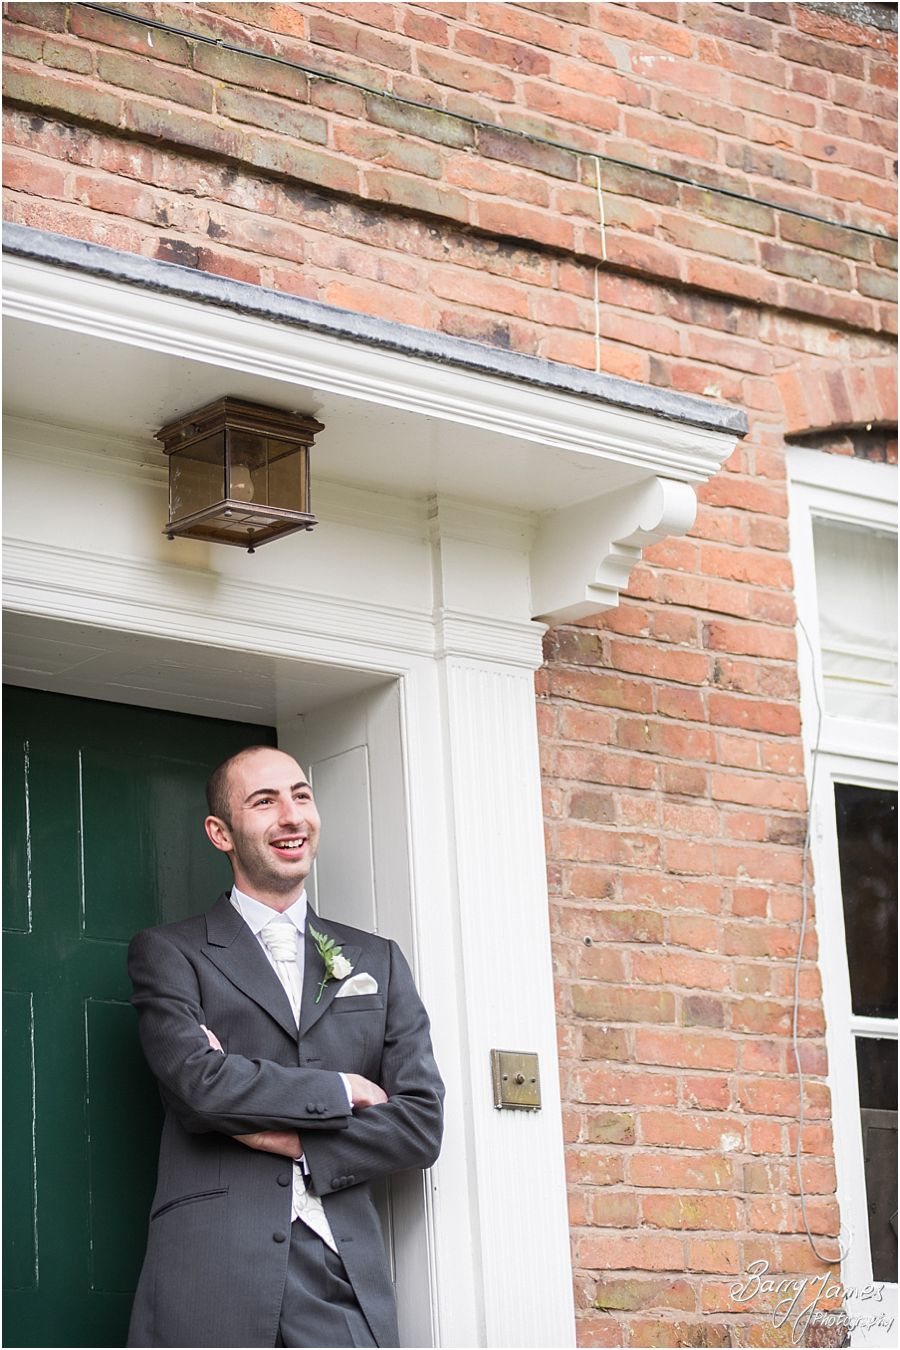 Relaxed portraits of groom and groomsmen at The Moat House in Acton Trussell by Stafford Wedding Photographer Barry James